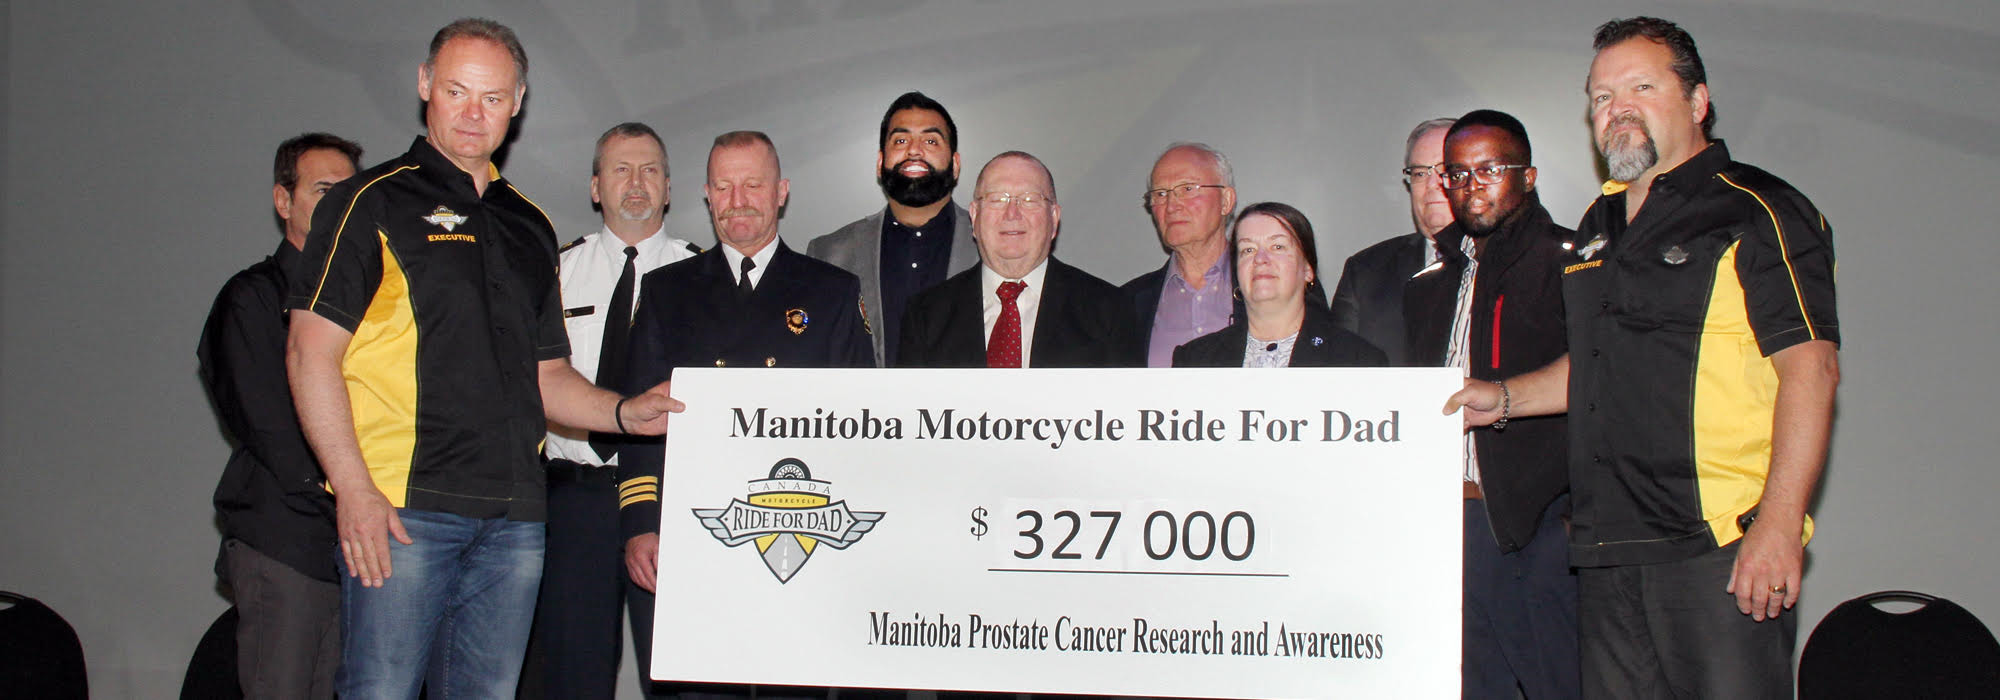 TELUS MANITOBA MOTORCYCLE RIDE FOR DAD KICKS-OFF 2017 PROSTATE CANCER AWARENESS CAMPAIGN